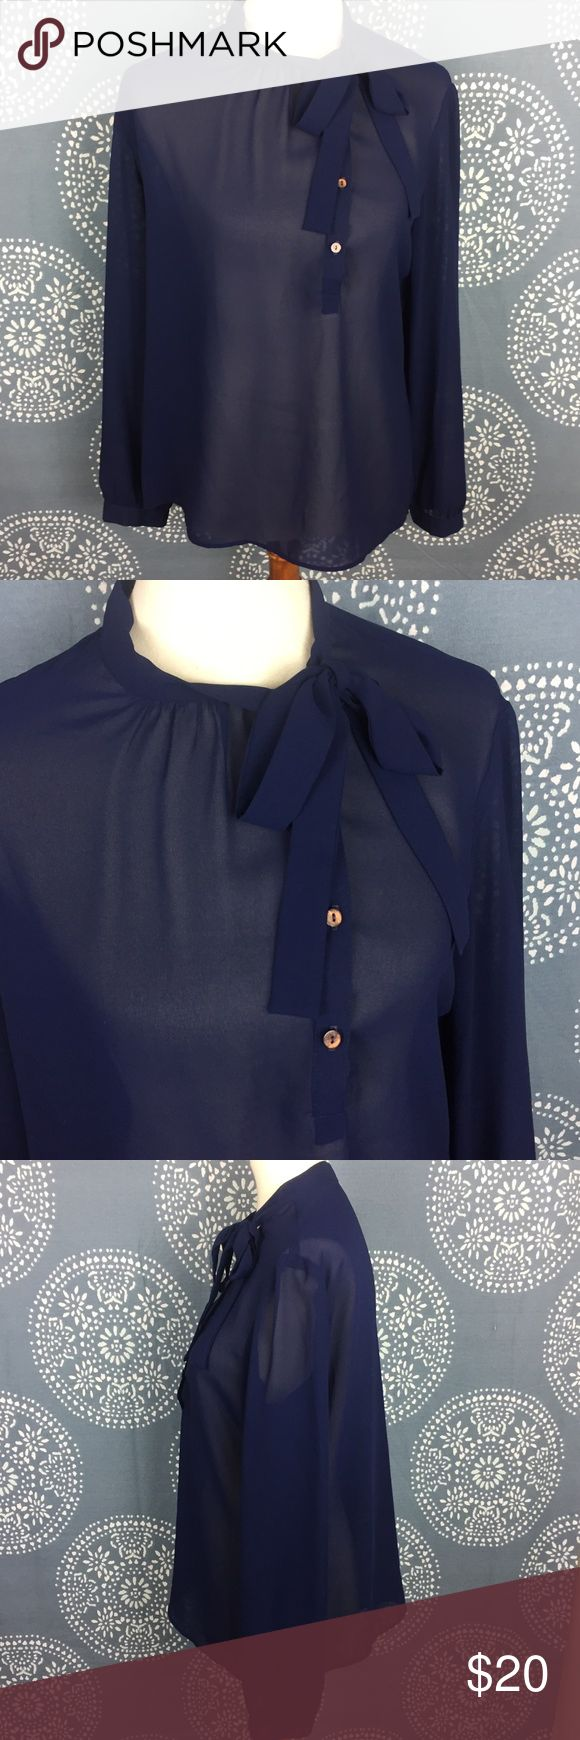 "Vintage Philippe Marques Sheer Navy Blouse Philippe Marques long sleeve sheer navy blouse. It has a high collar with a tie and asymmetrically place buttons on the left side. It is polyester and in great condition.  21"" armpit to armpit 26"" long Philippe Marques Tops Blouses"